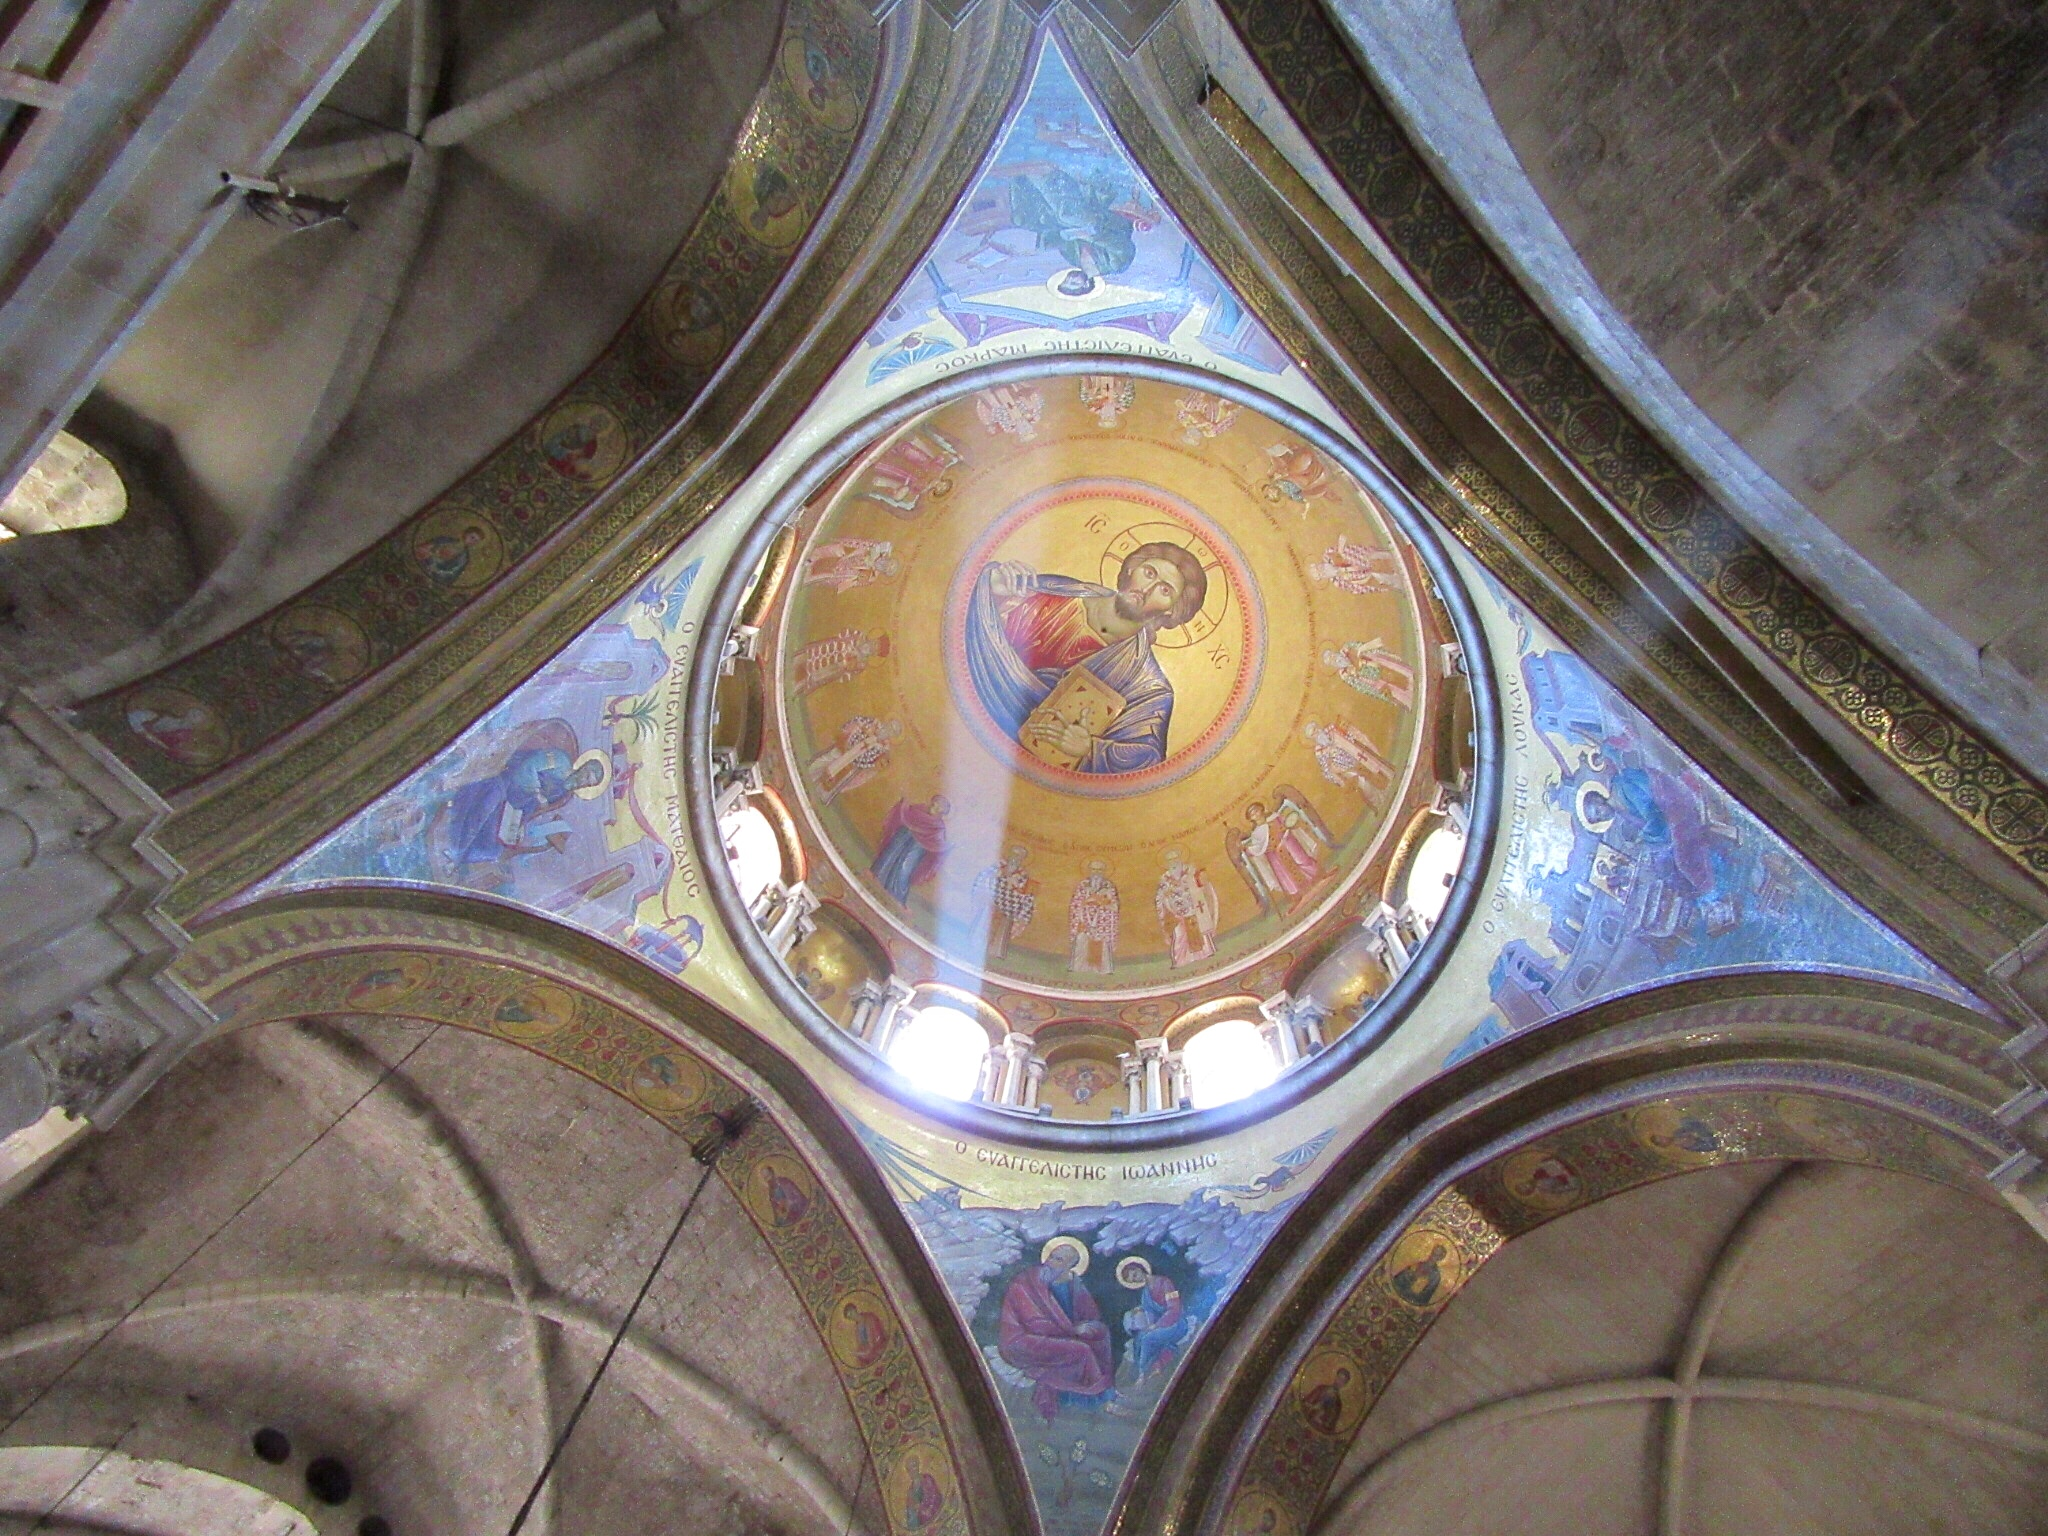 The Christ Pantocrator ceiling above the Catholicon in the center of the Church of the Holy Sepulchre.